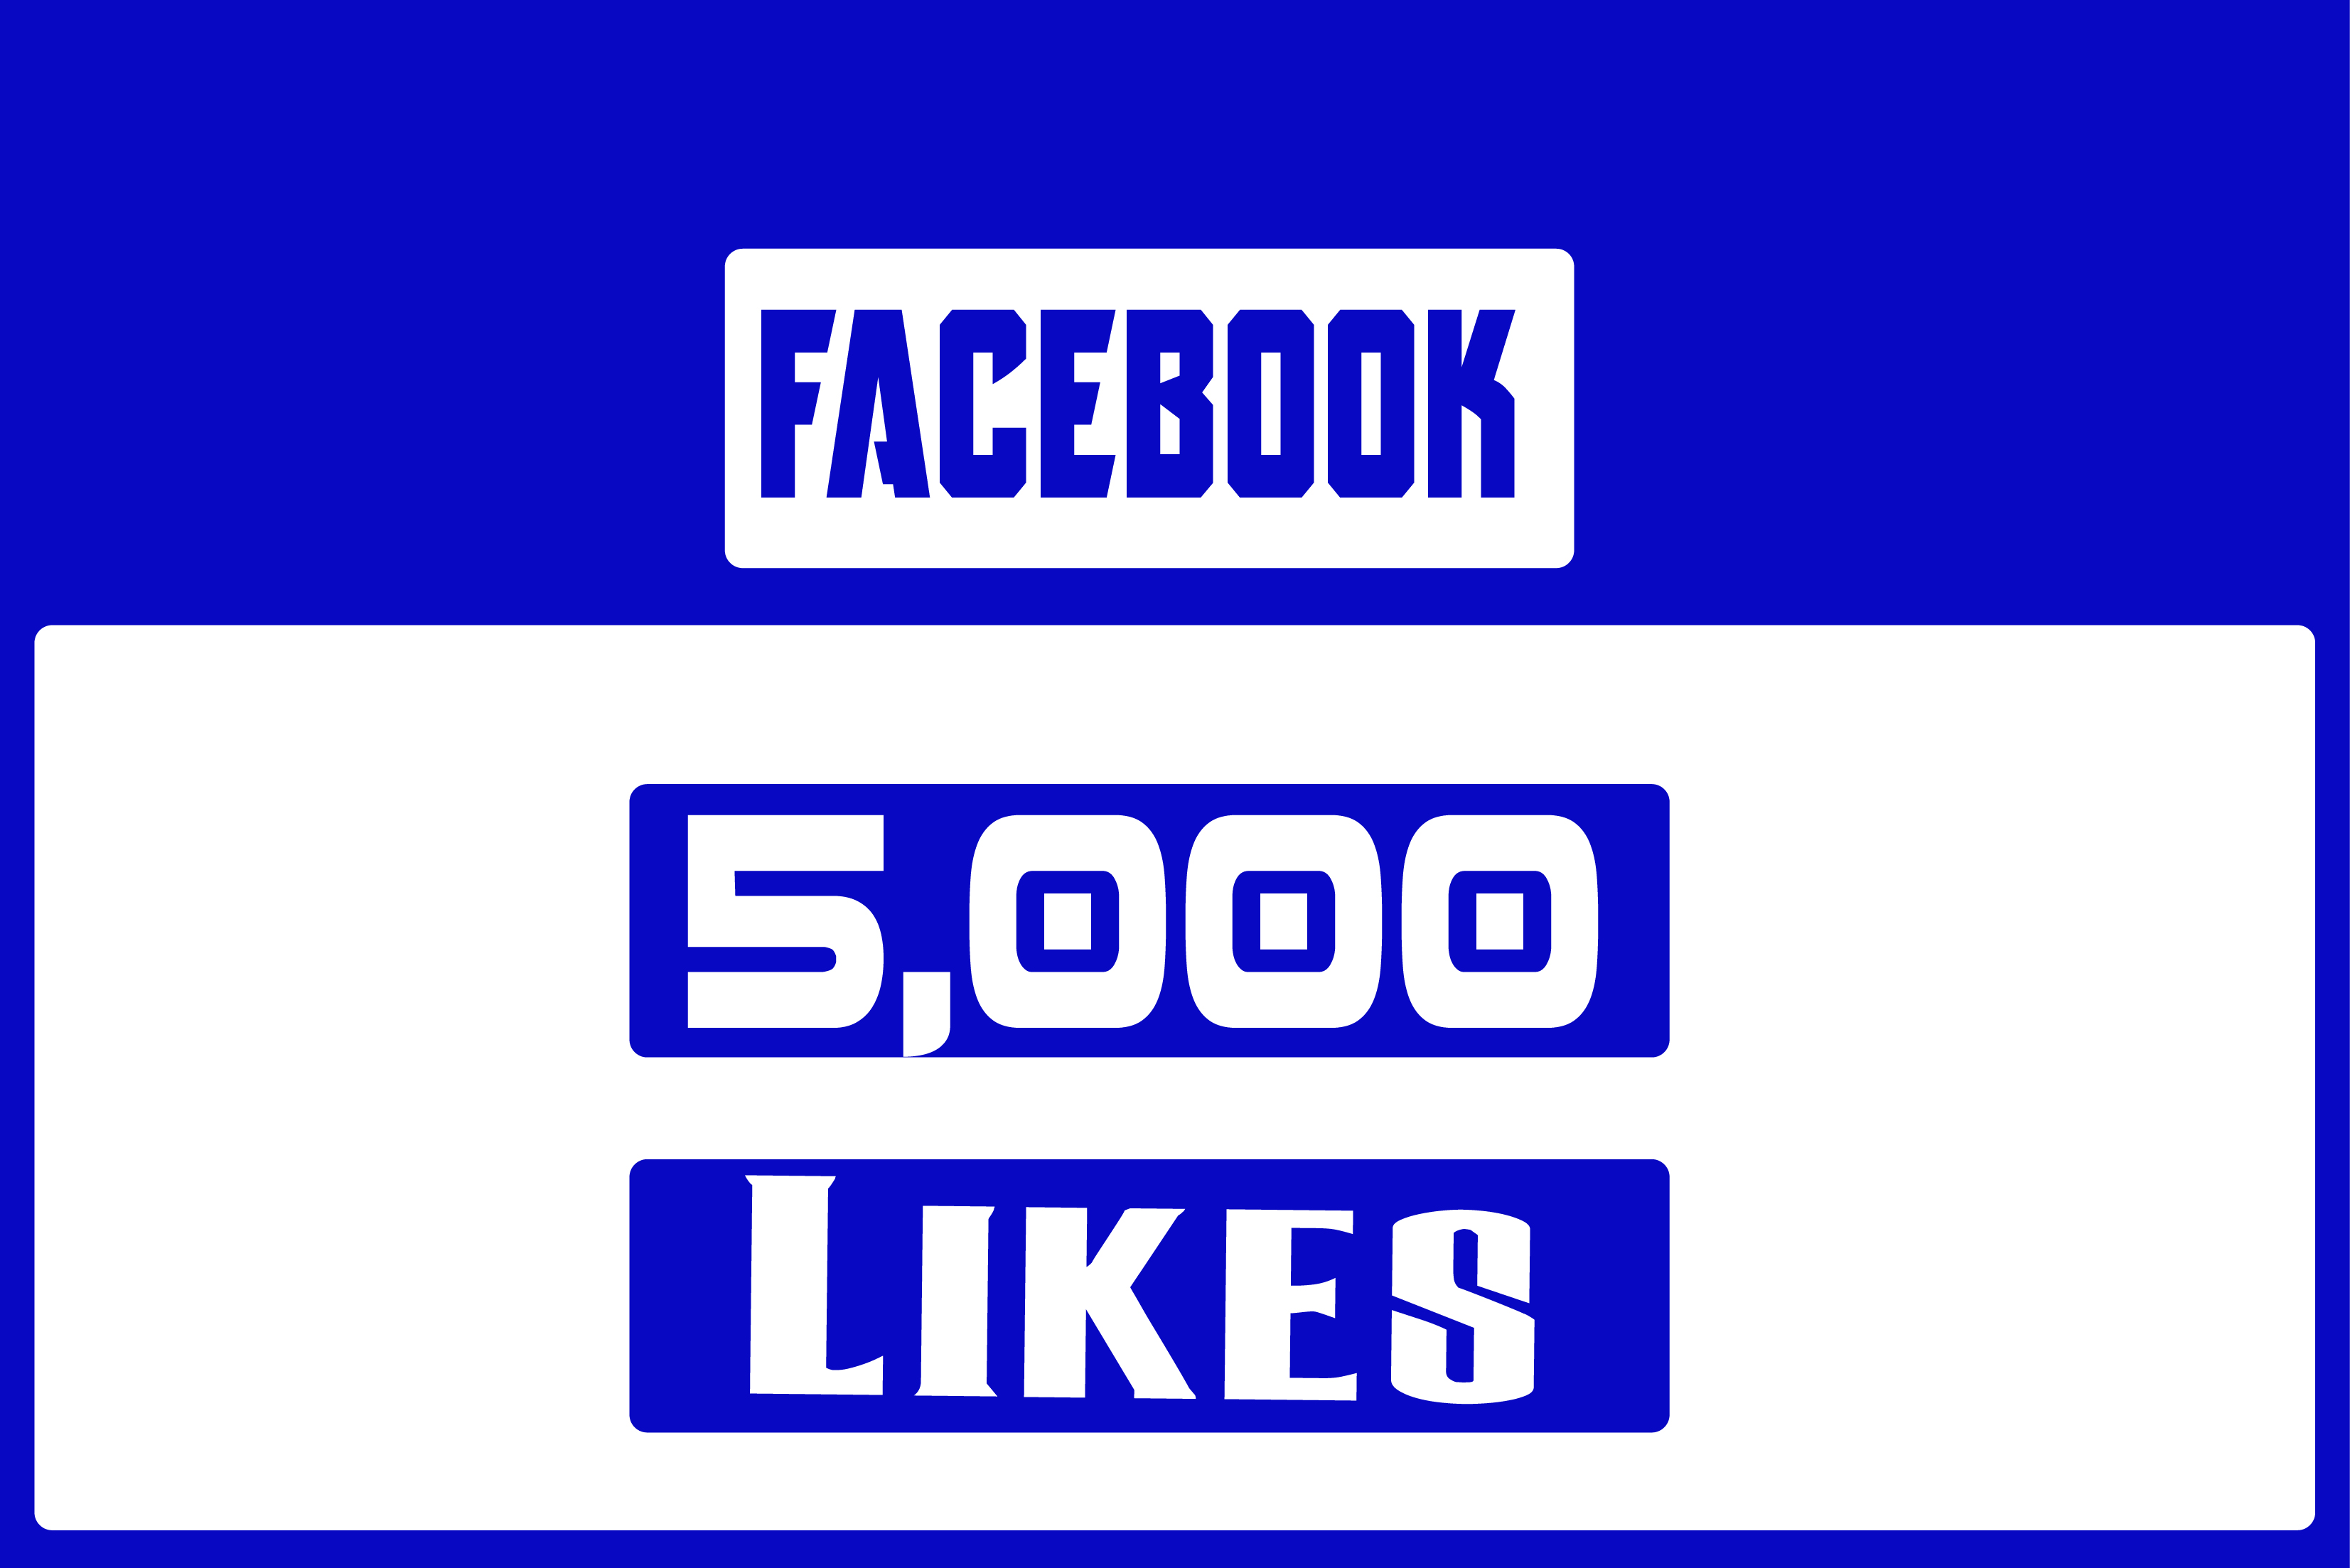 Gives you 5,000+Facebook Super Fast Instant Fan page likes .